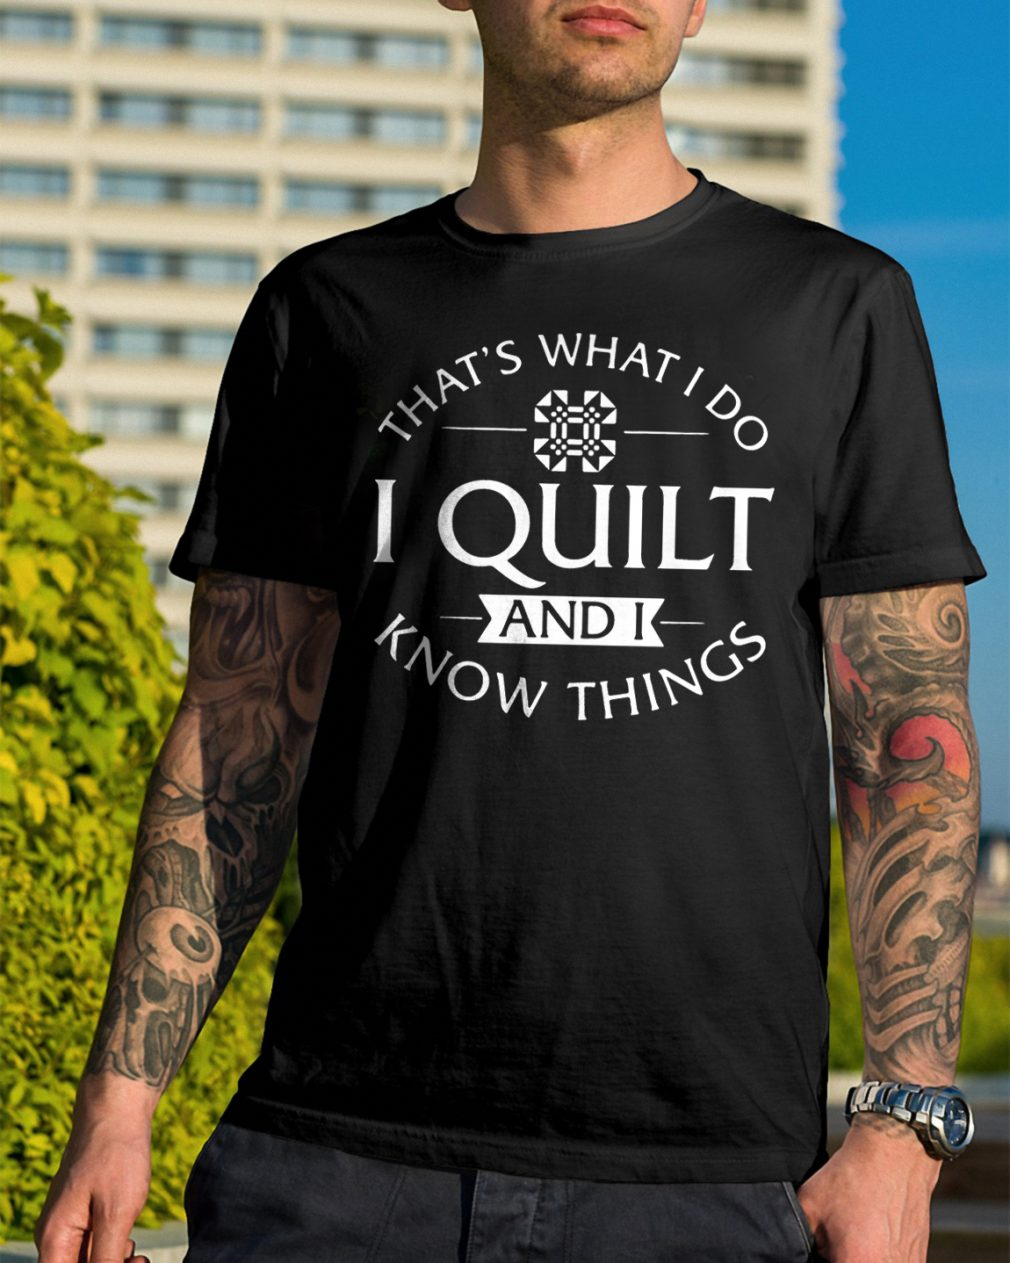 Thats Quilt Know Things Shirt